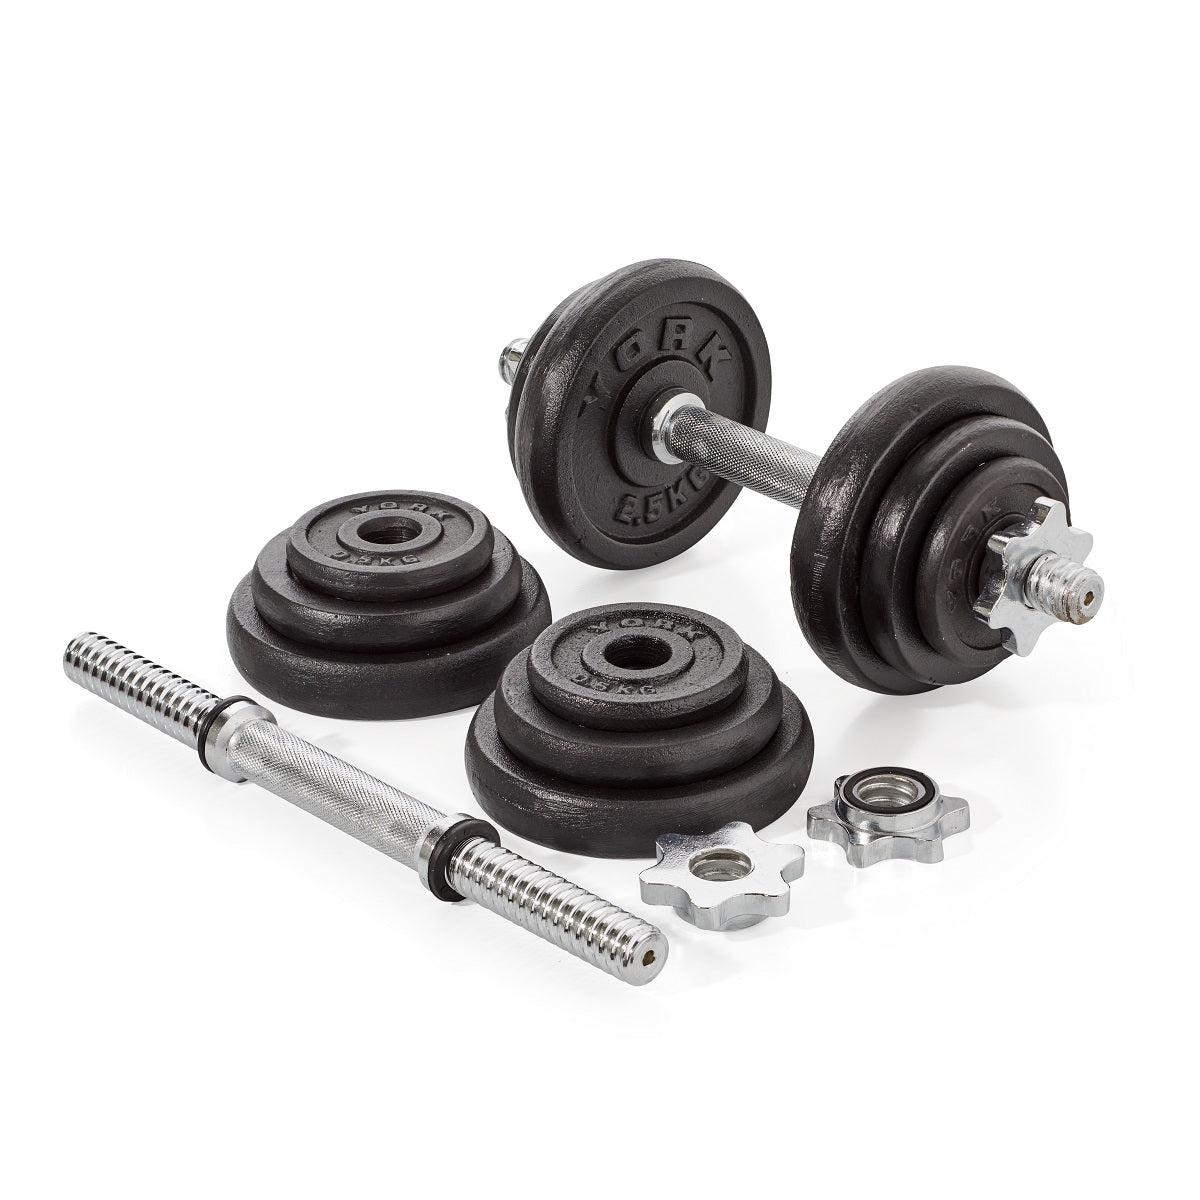 20 kg black cast iron dumbbell spinlock set low price weight set